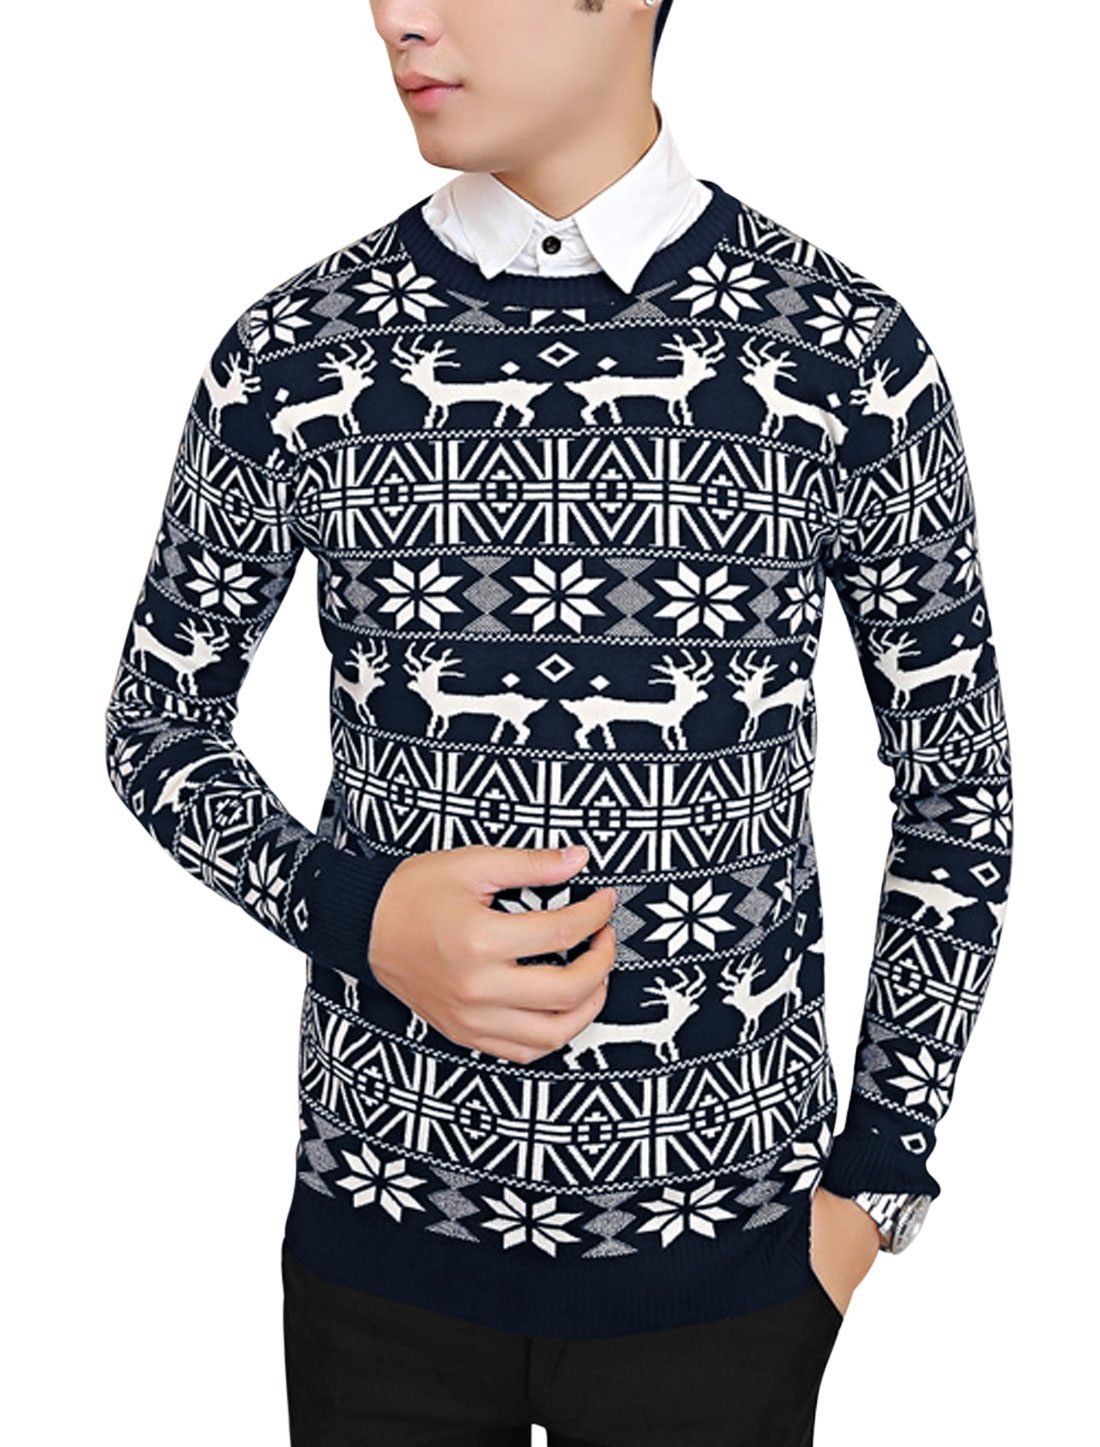 Men Round Neck Geometric Pattern Soft Casual Knit Shirt Navy Blue M